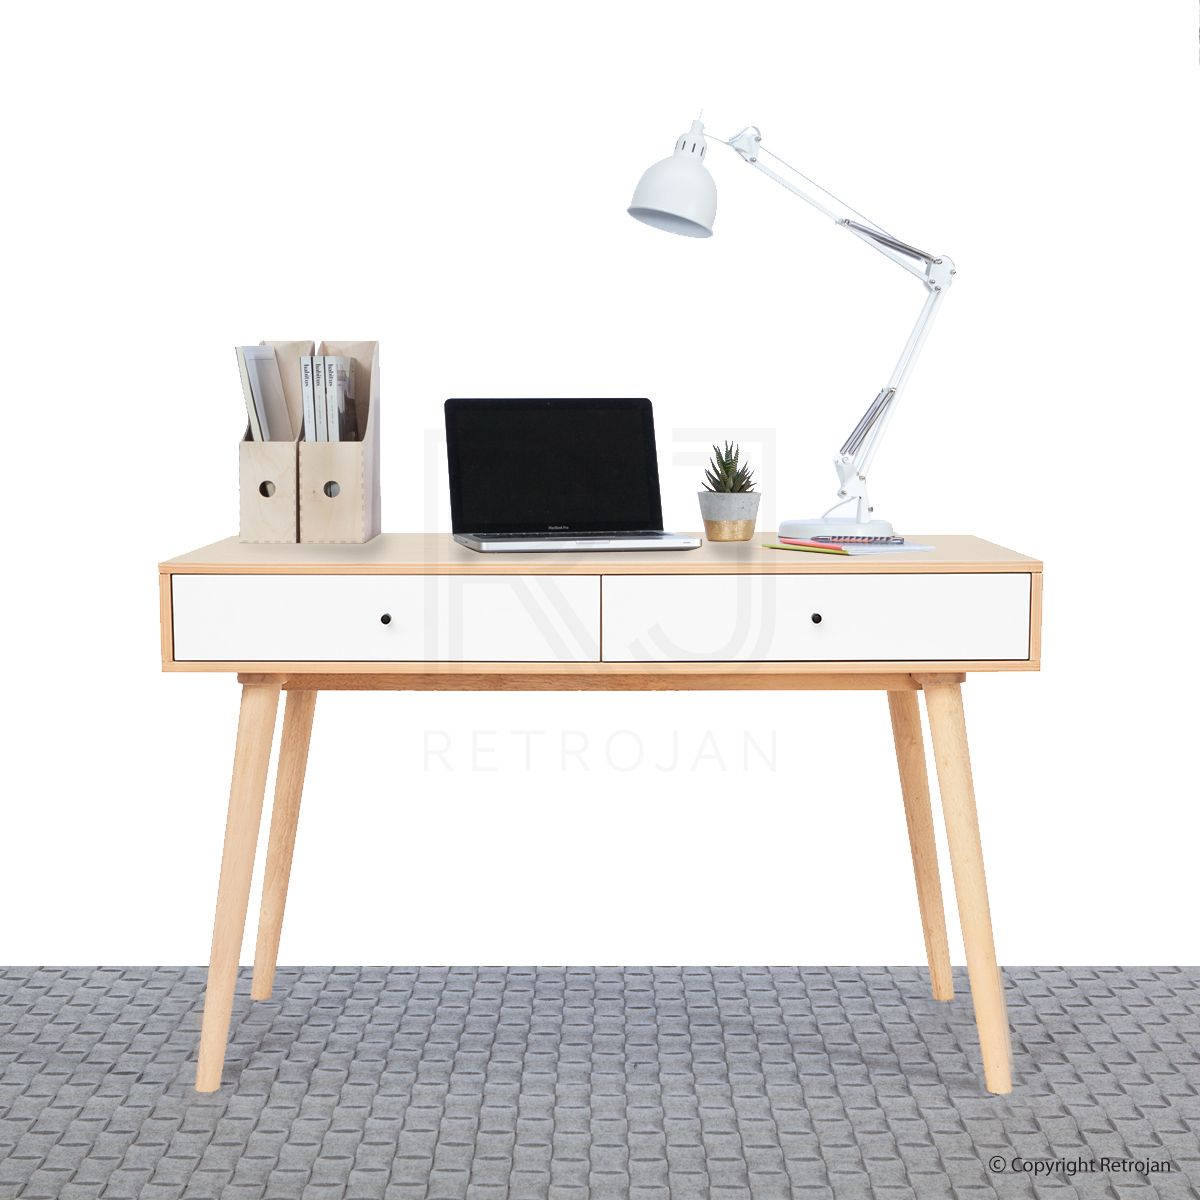 Scandinavian Style Desk aud 399 -- jorgen scandinavian style office desk | retrojan